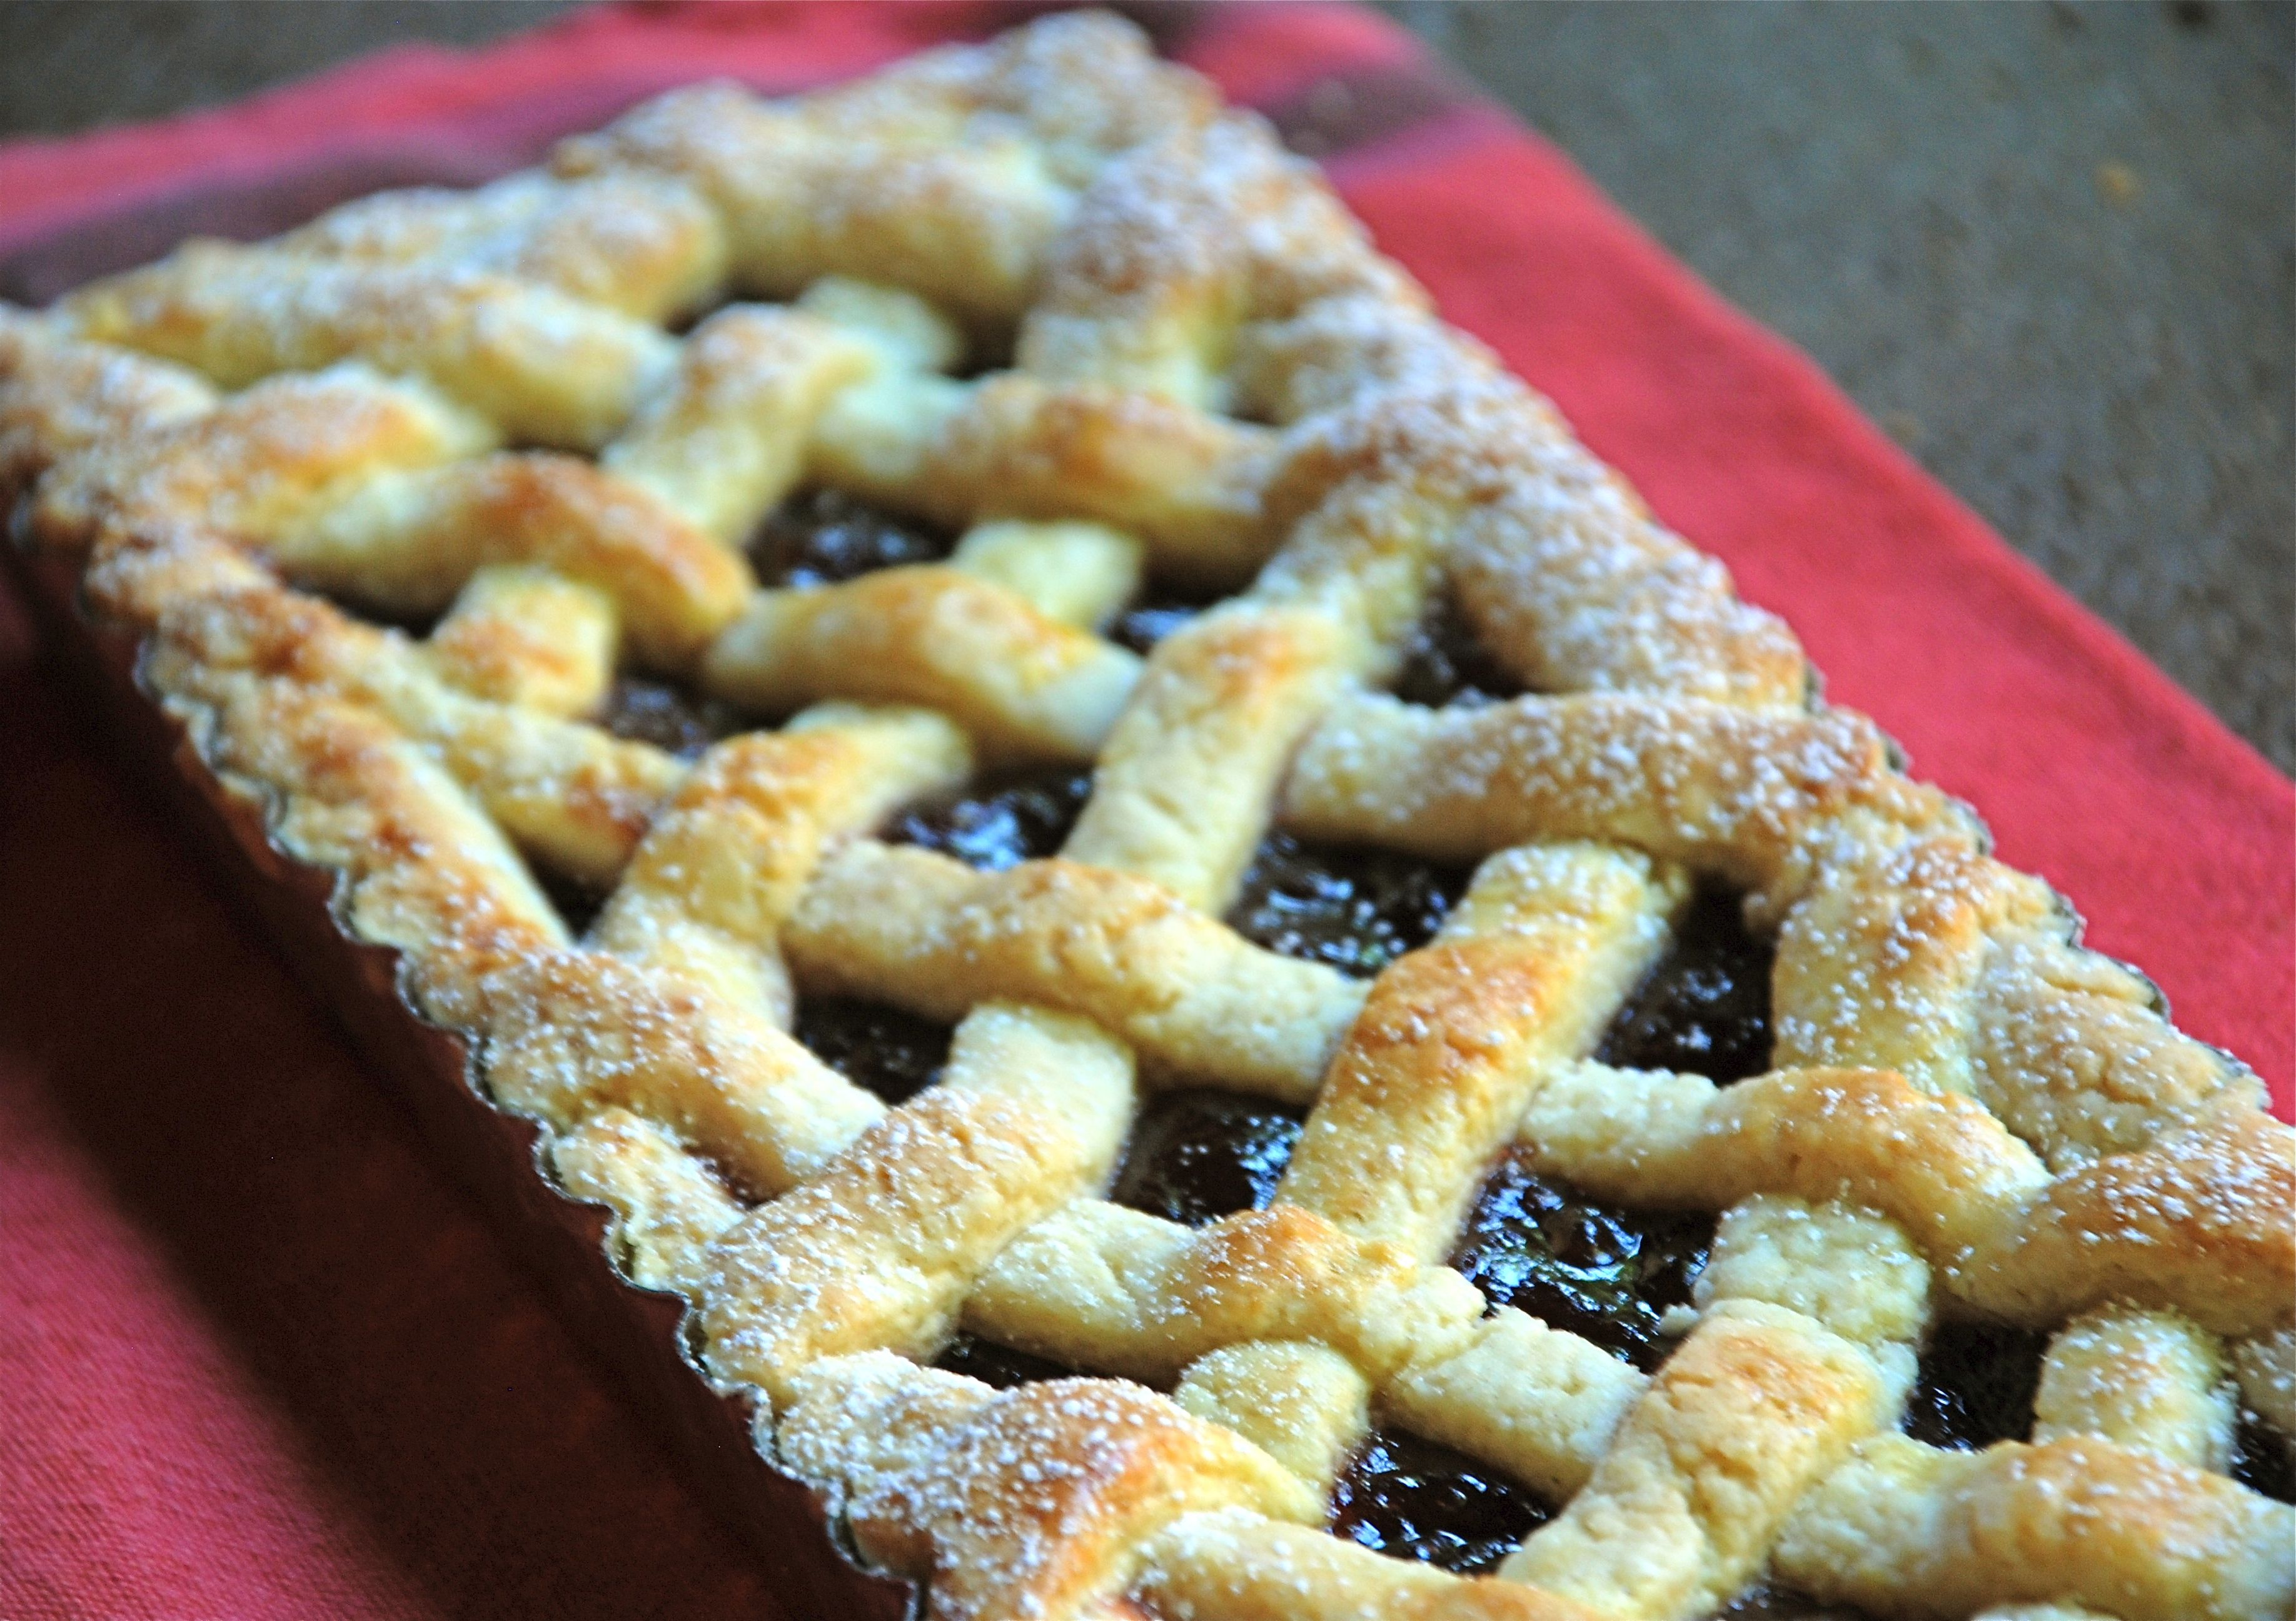 South american food recipes try this argentinian pasta frola de dulce de membrillo tart recipe forumfinder Choice Image